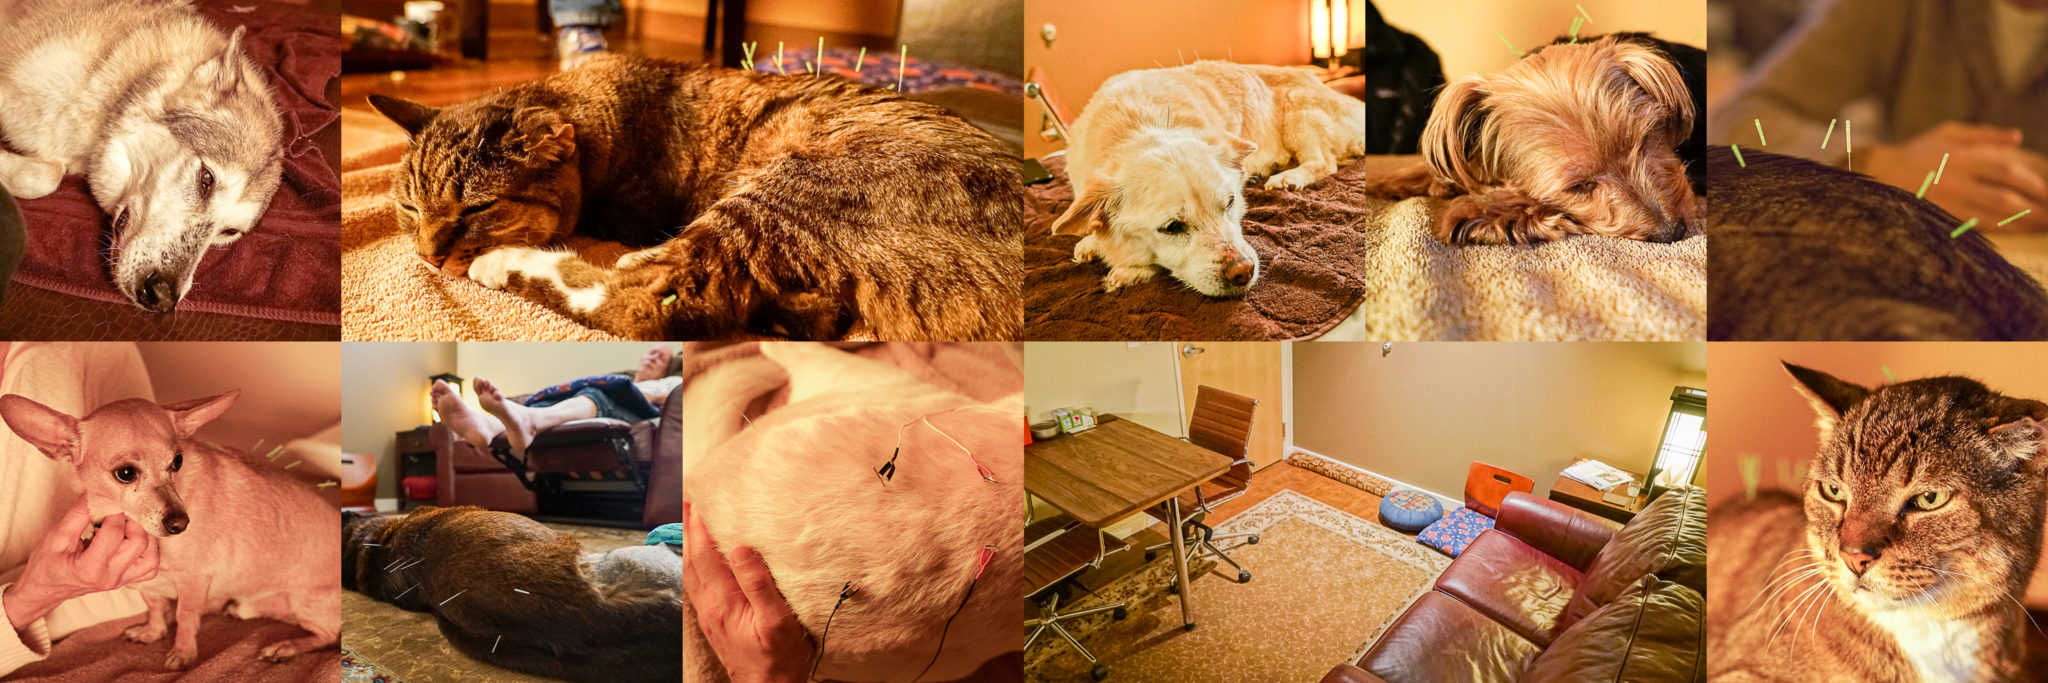 dog acupuncture, dog accupuncture, cat acupuncture, veterinary acupuncture